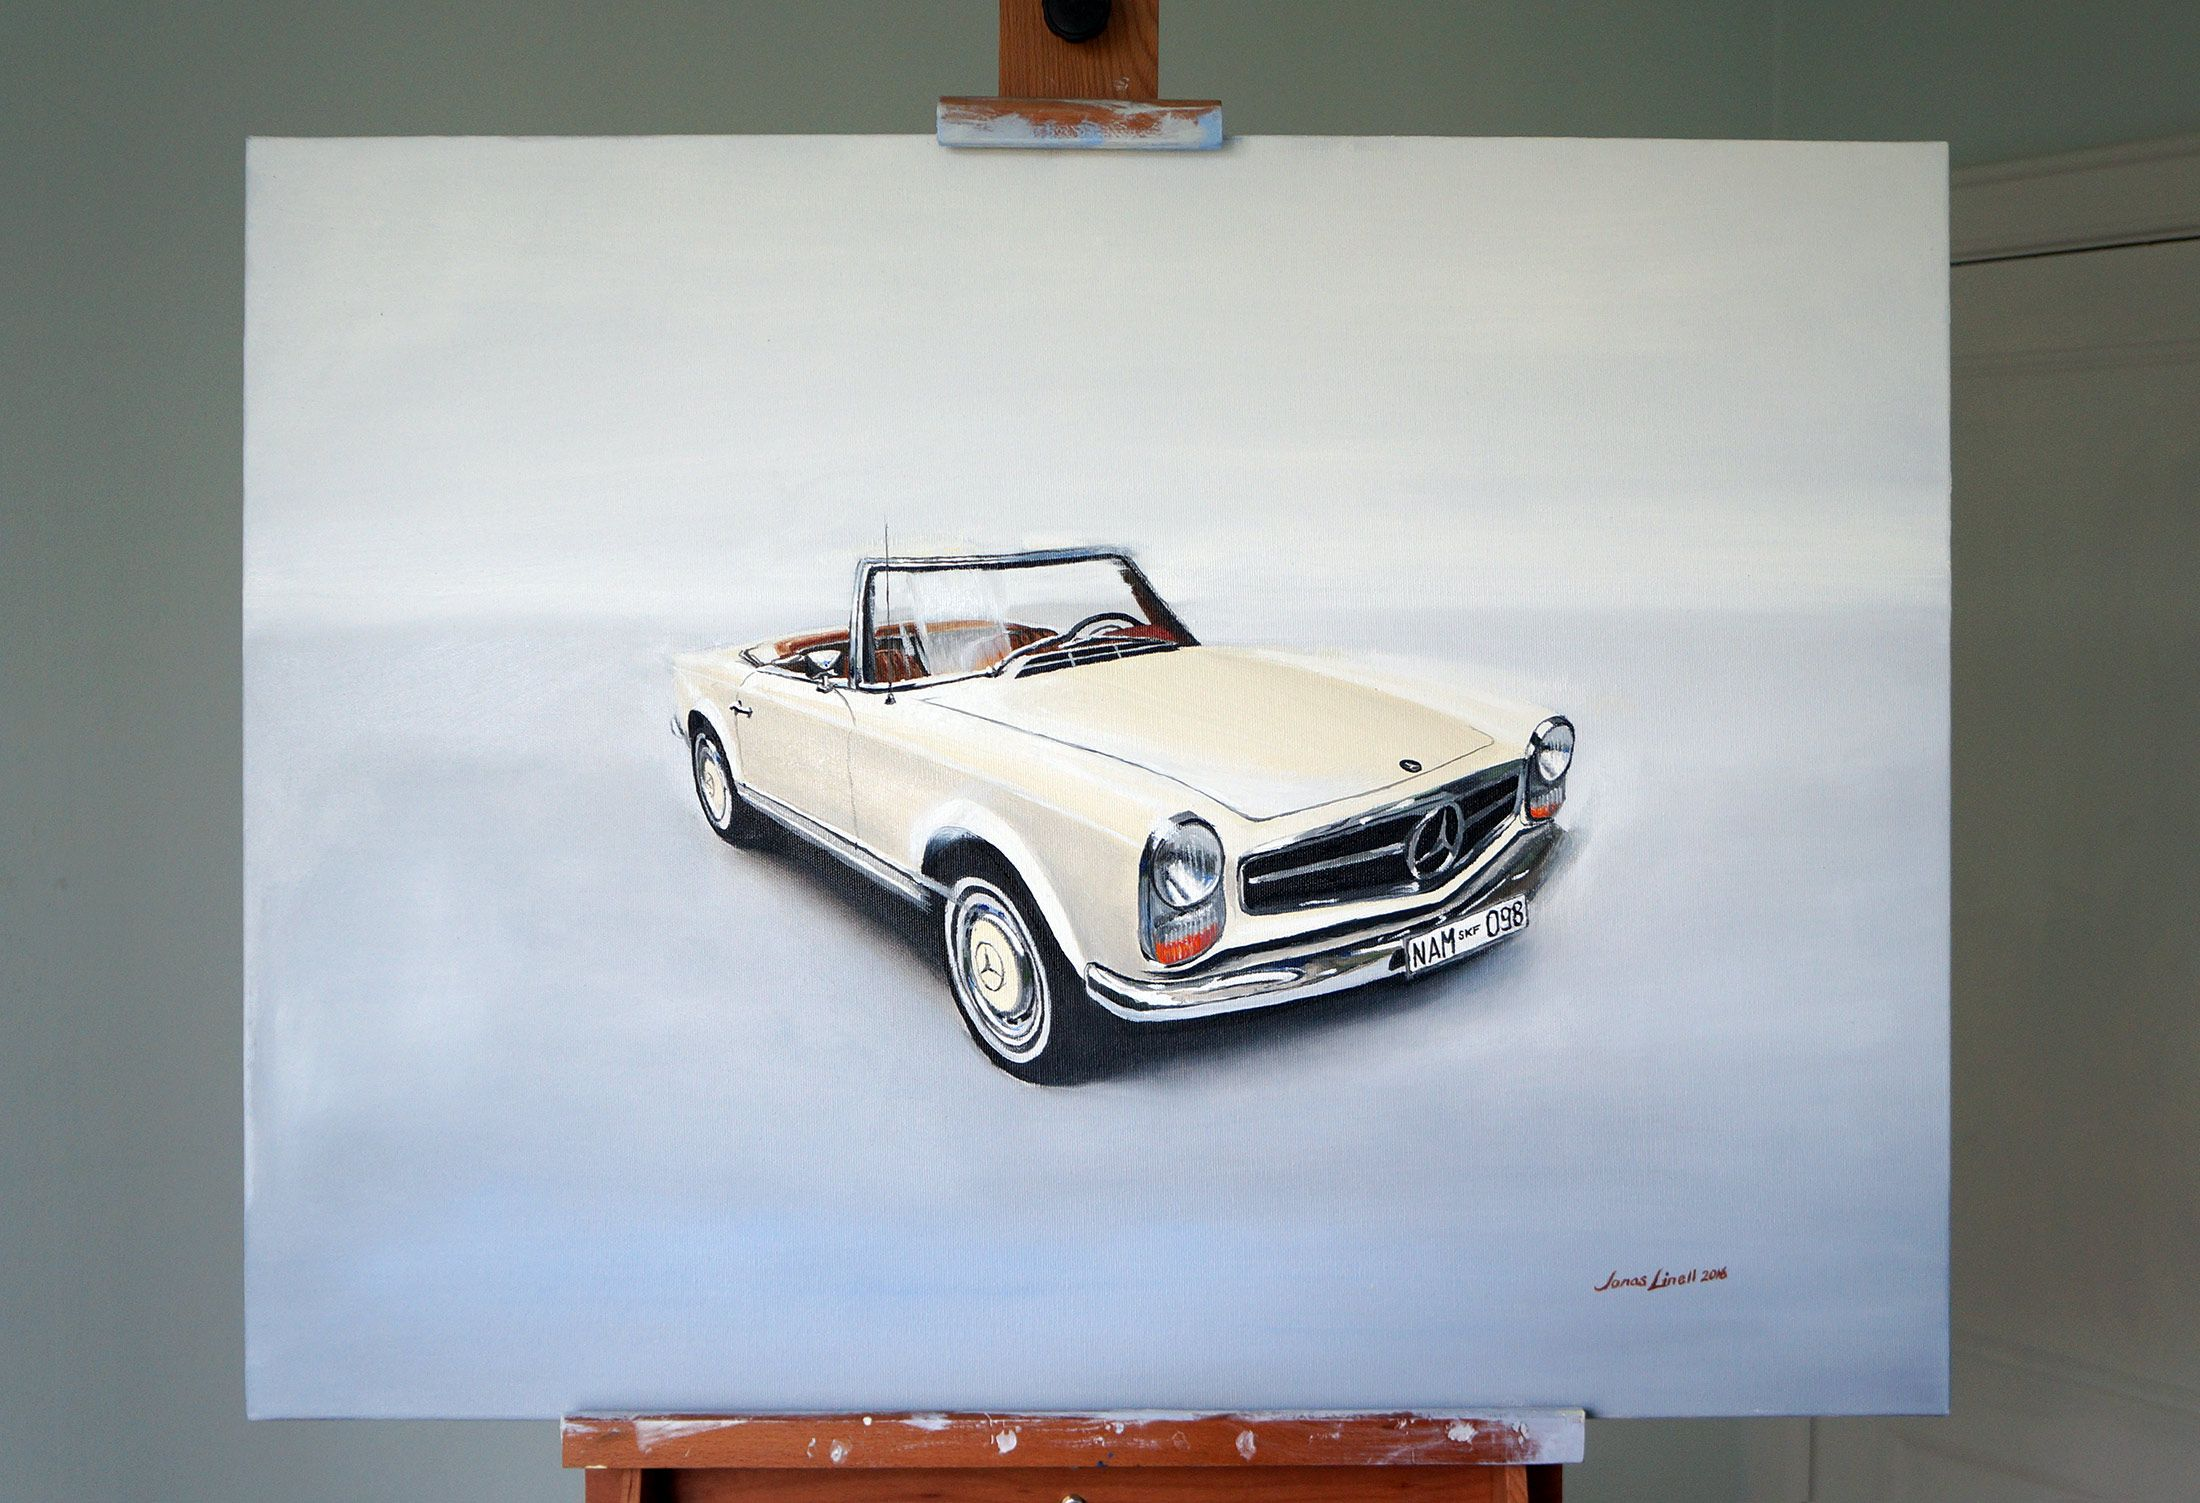 Mercedes-Benz 280SL done for Danish client. Oil on canvas, 80 x 60 cm. Painting by Jonas Linell 2016. #oil #painting #oilpainting #art #artwork #‎carart‬ ‪#‎classiccars‬ ‪#‎mercedes‬ ‪#‎benz #mercedes-benz‬ ‪#‎vintage‬ ‪#‎cars‬ ‪#‎car‬ ‪#‎illustration‬ ‪#‎classic‬ ‪#‎german‬ ‬ ‪#‎art‬ ‪#‎posters‬ ‪#‎painting‬ ‪#‎artwork‬